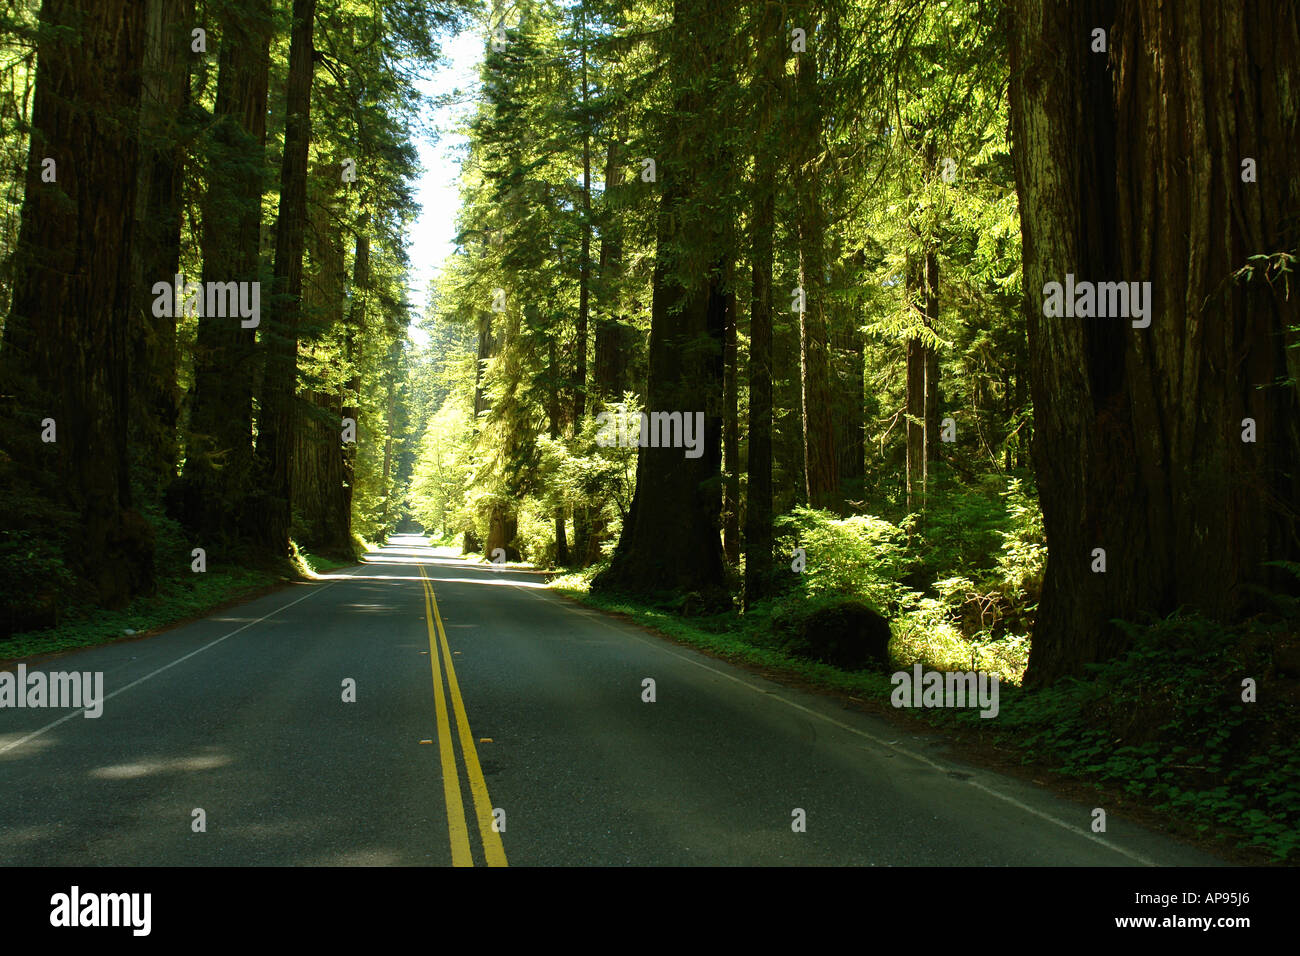 AJD51306, CA, California, Pacific Ocean, Redwood National and State Parks, Prairie Creek Redwoods State Park, road - Stock Image